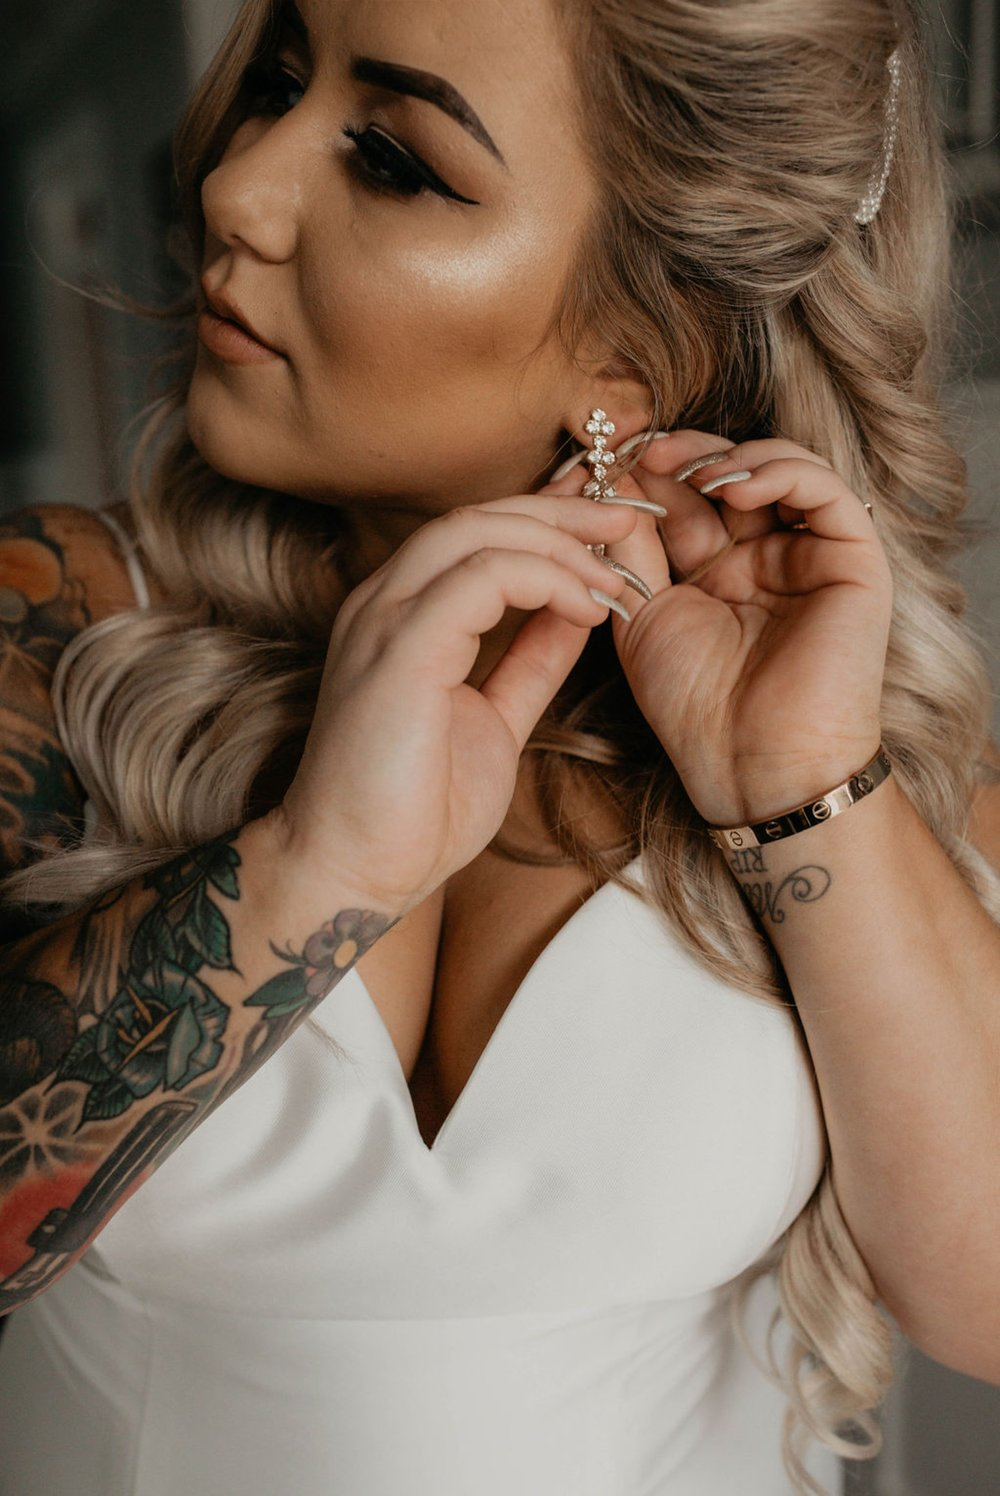 Bride putting on her ear rings by anthropologie - Matt Smarsh and Johanna Dye - suites by the black tux - Raleigh North Carolina Urban Edgy Downtown Wedding - suits by the black tux